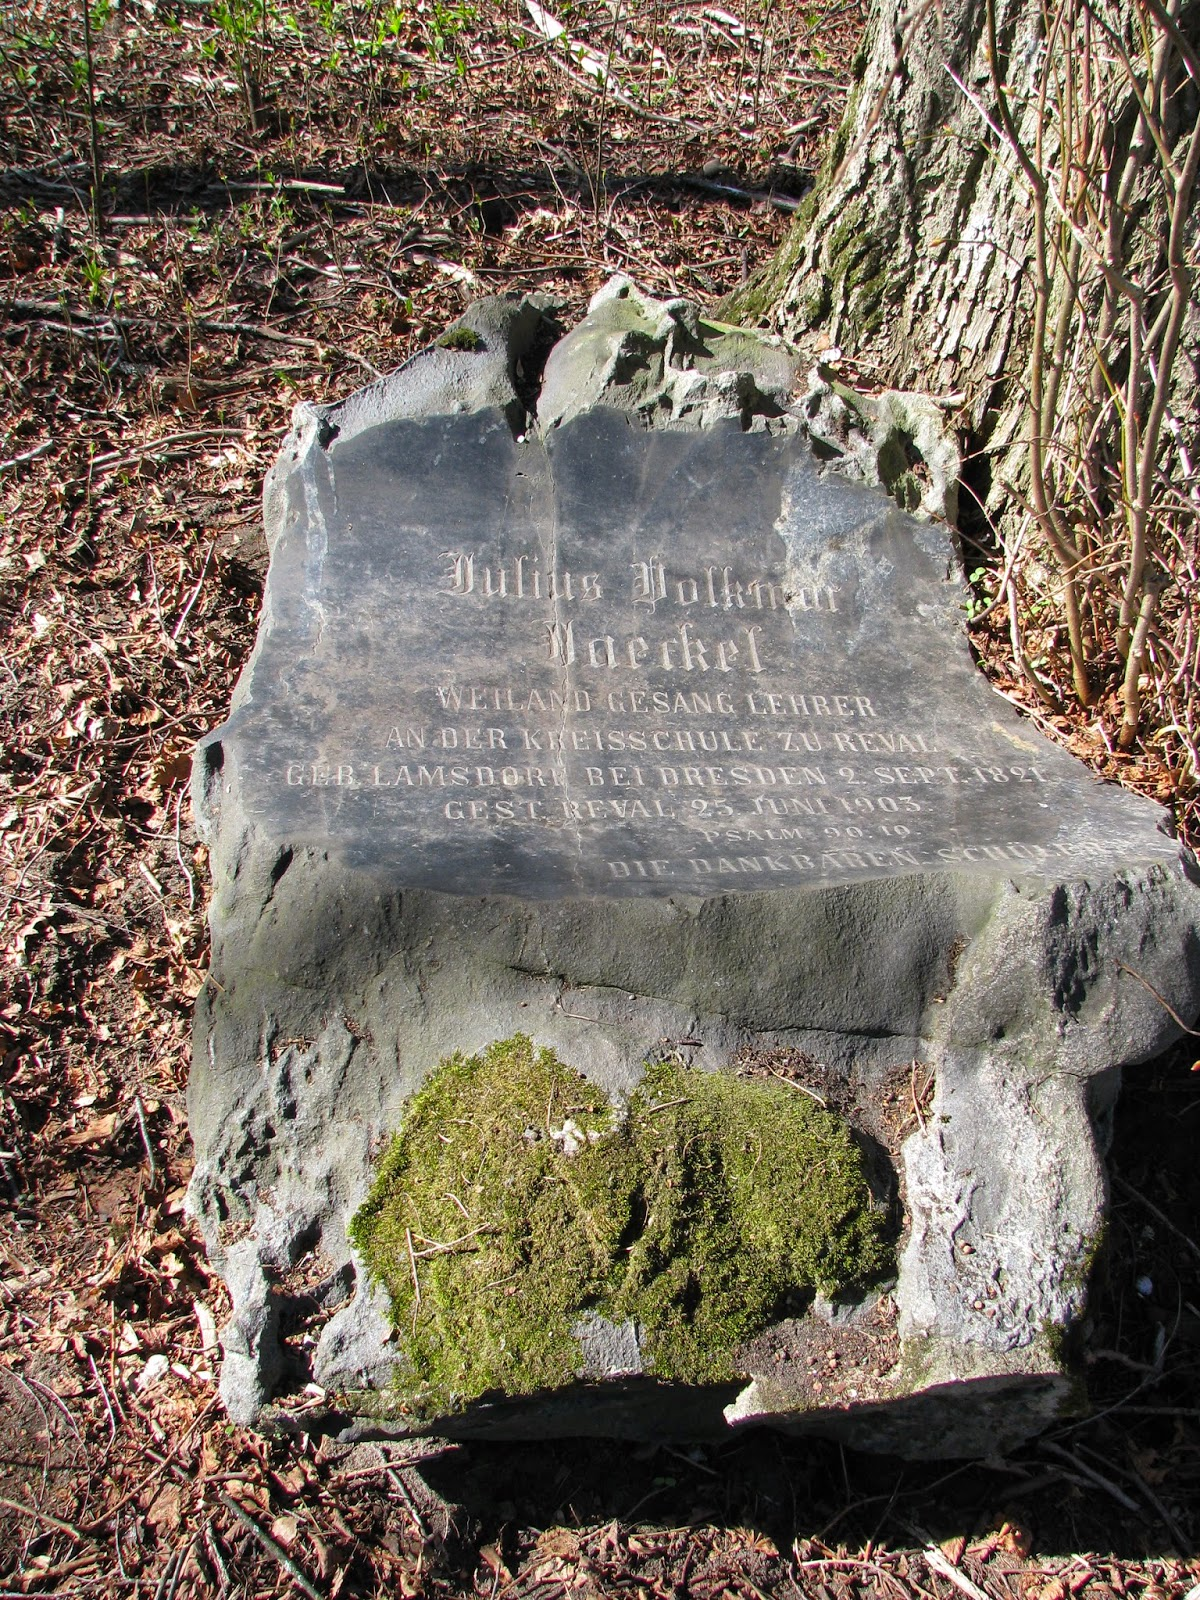 One of the few survived headstones at Mõigu.